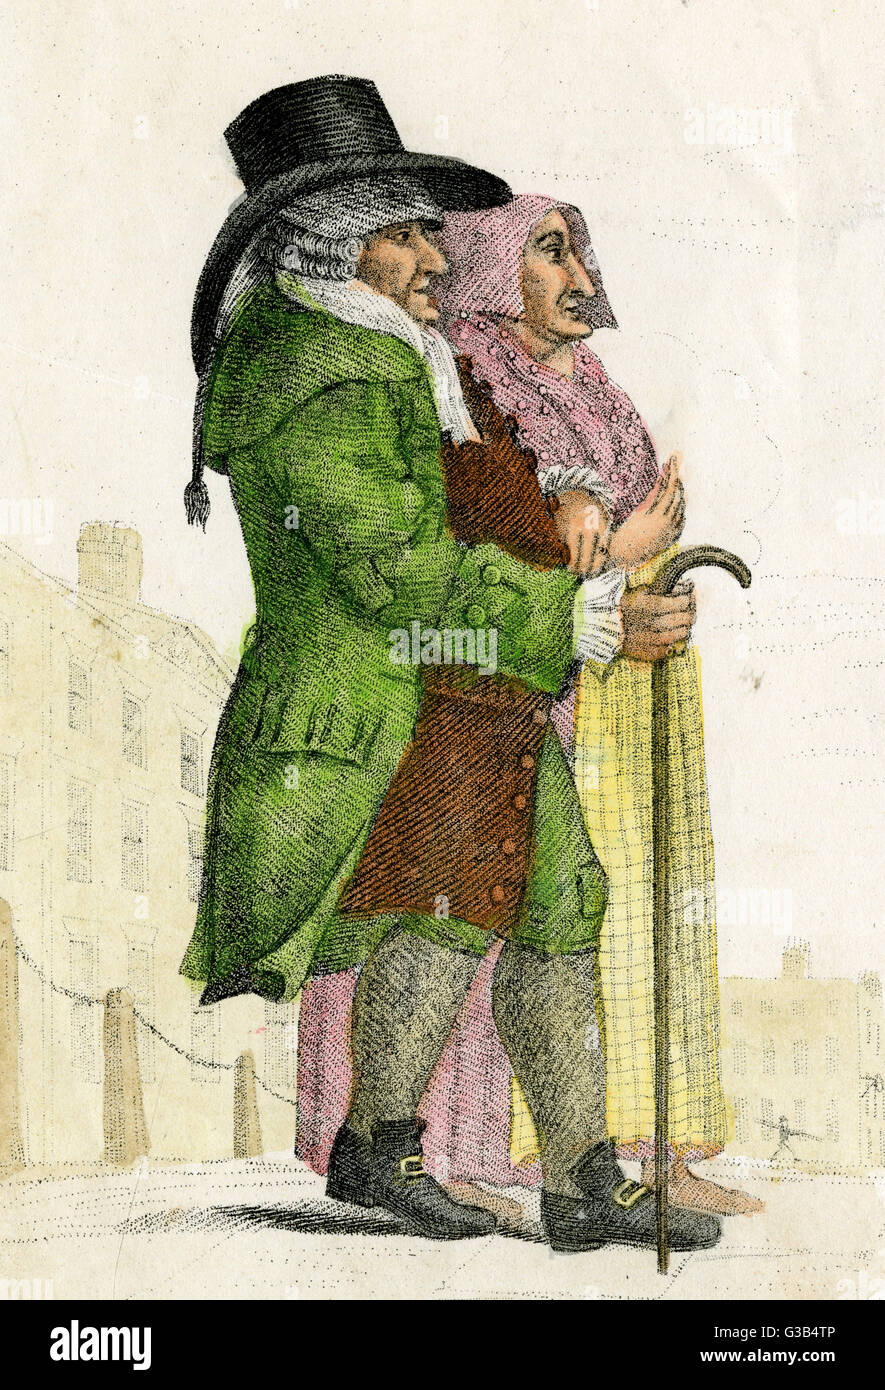 Thomas Cooke, the miser of  Islington, and his wife who he  married for her wealth :  together they lived a life - Stock Image